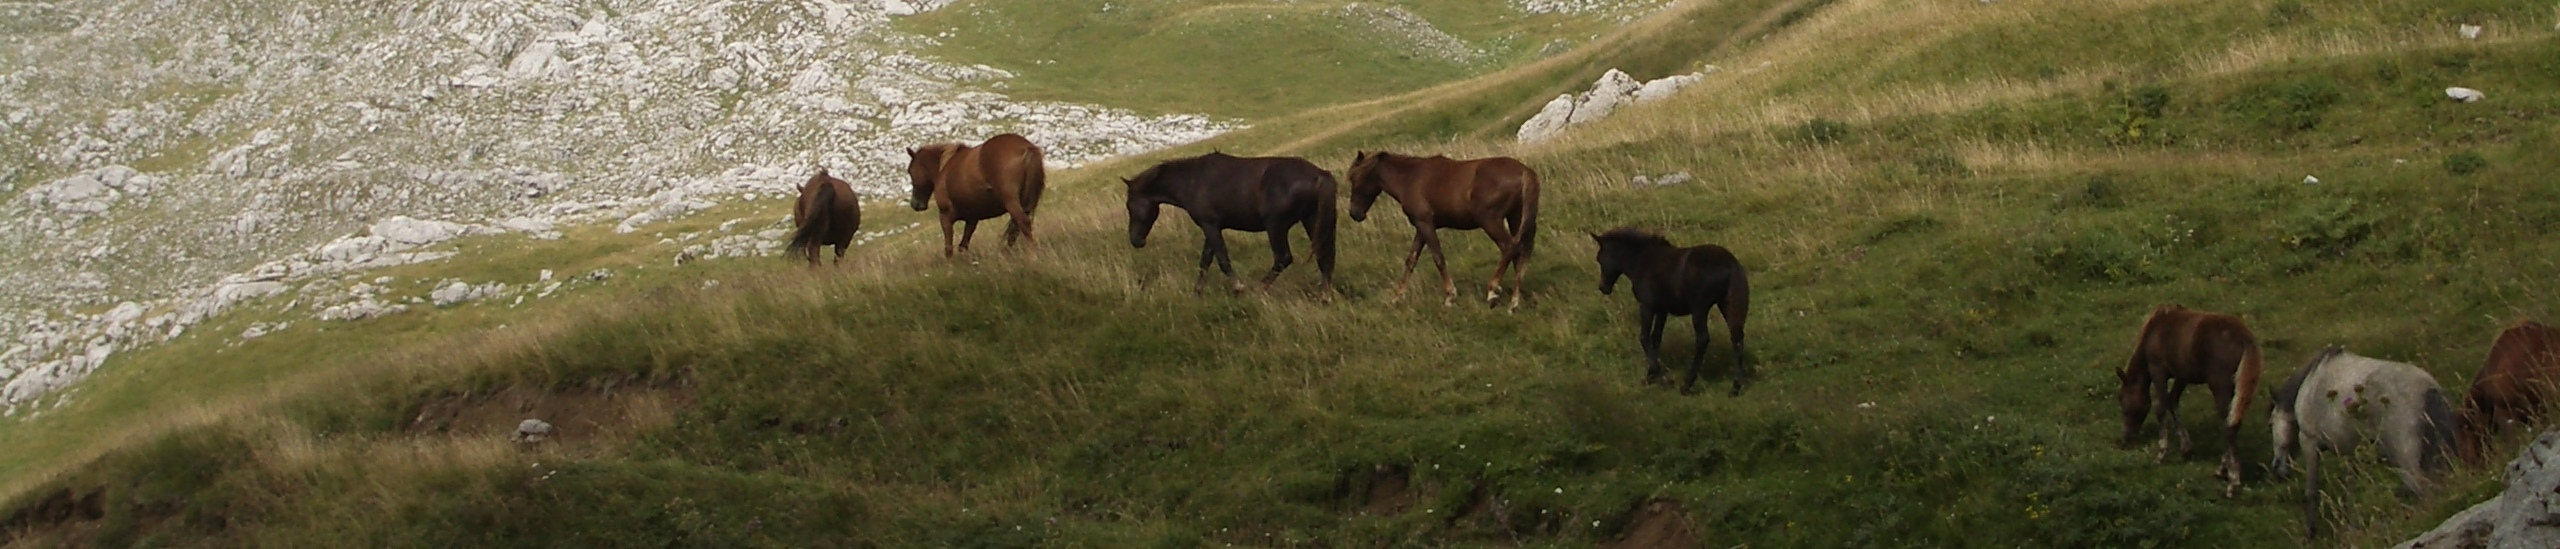 image of wild horses roaming free in the highlands of Montenegro